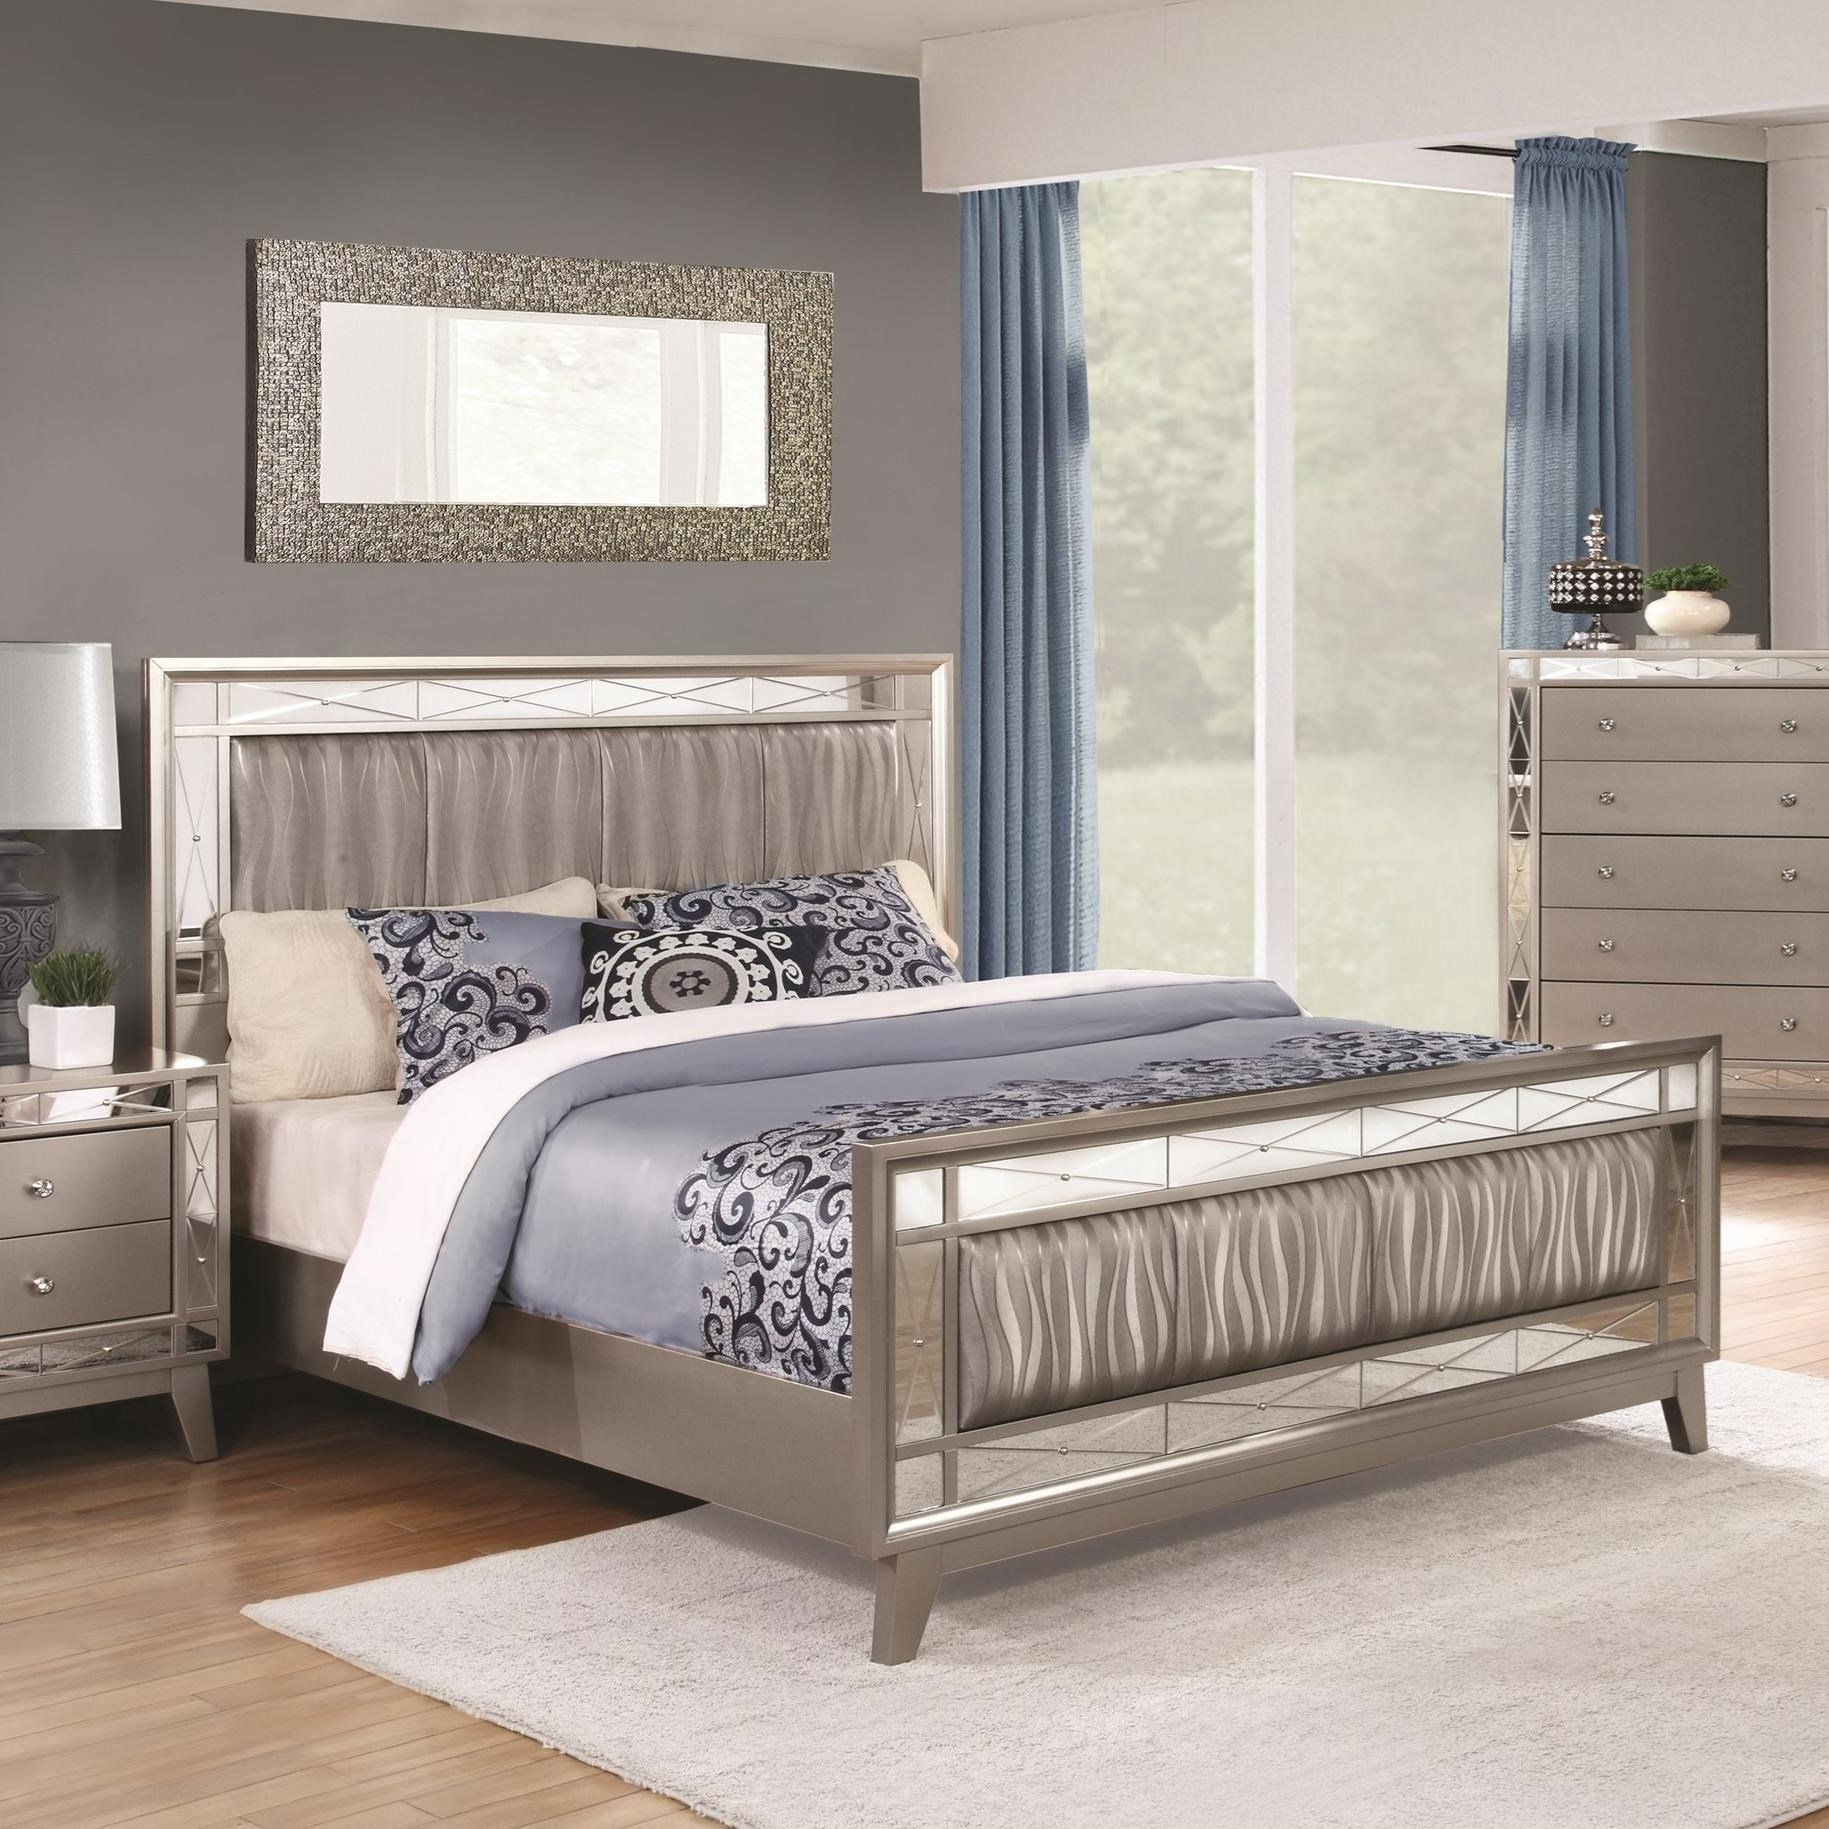 Coaster Leighton 204921ke King Bed With Mirrored Panel Accents Dunk Bright Furniture Panel